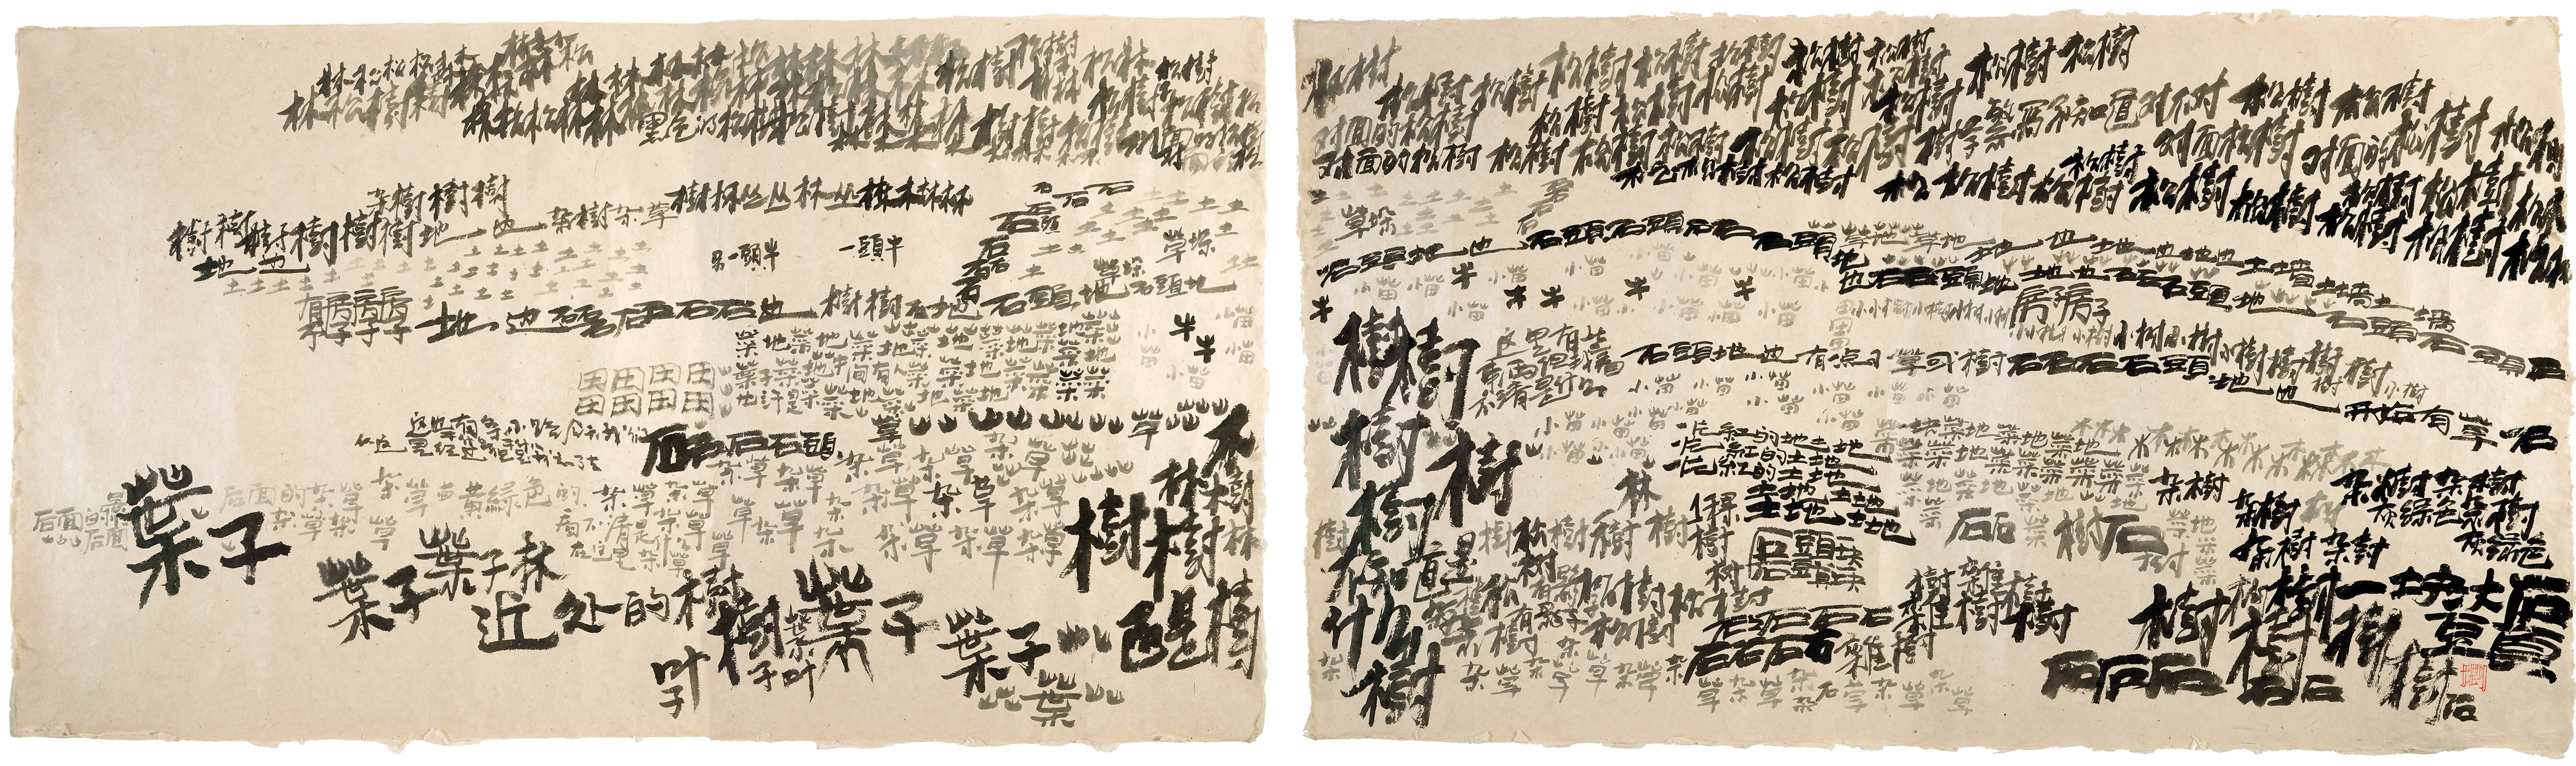 From a private collection. Xu Bing (B. 1955), Landscript – The Drawing from the Project of Helsinki-Himalaya Exchange. A pair of scrolls, mounted and framed, ink on paper. Each scroll measures 99.5 x 174 cm. (39 ⅛ x 68 ½ in.). Estimate HK$1,500,000 - 2,000,000. Offered in Fine Chinese Modern and Contemporary Ink Paintings on 1 December at Christie's in Hong Kong.